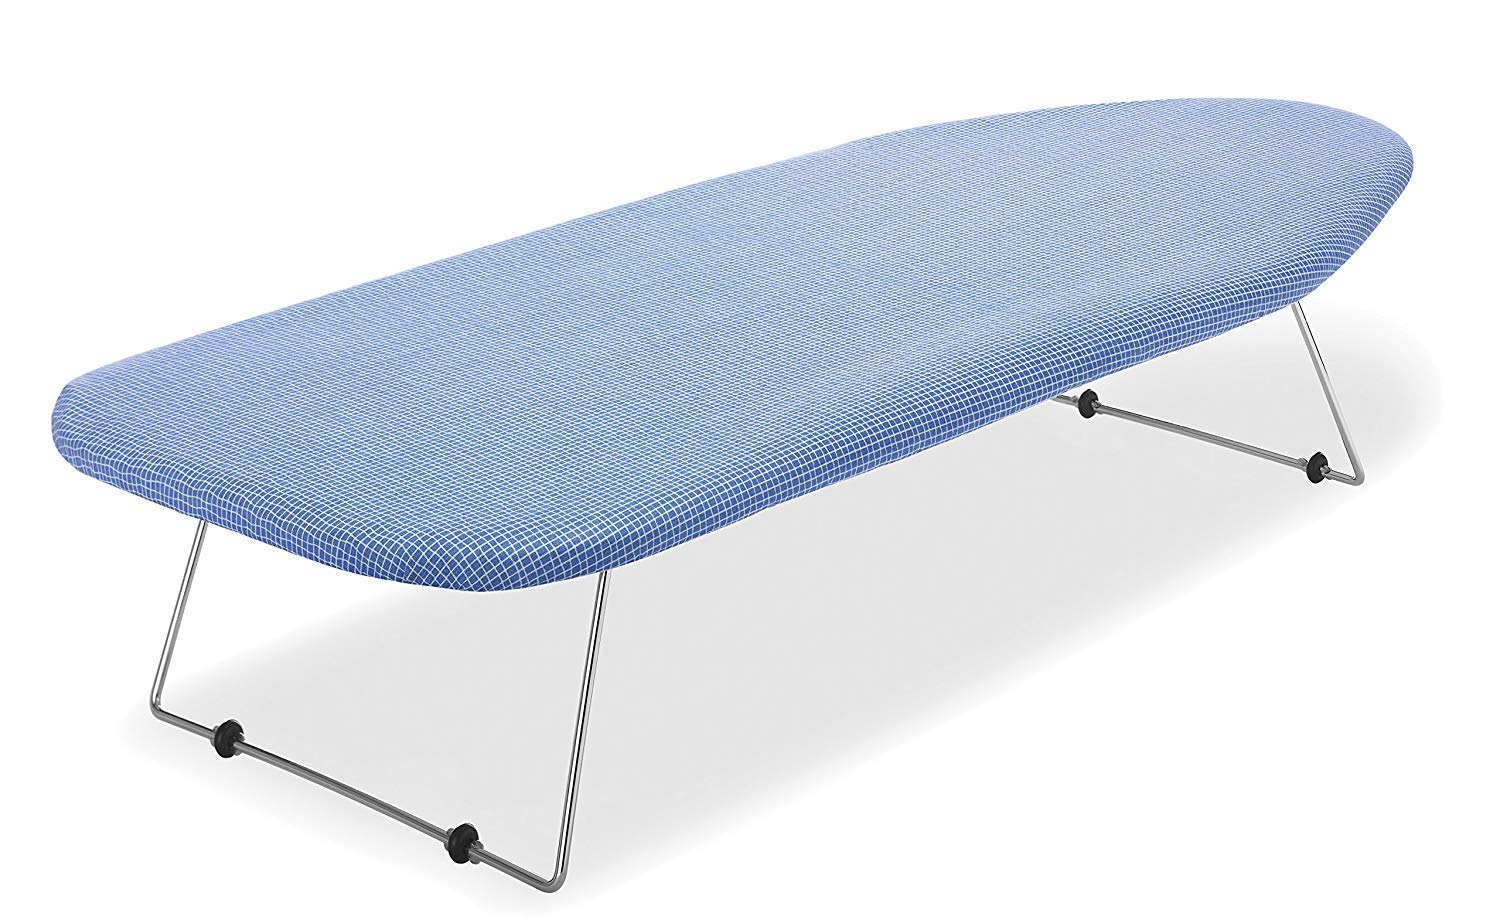 Tabletop Ironing Board Pad /& Cover in fits 12 1//2 Inch Wide x 30 to 32 Inch Long